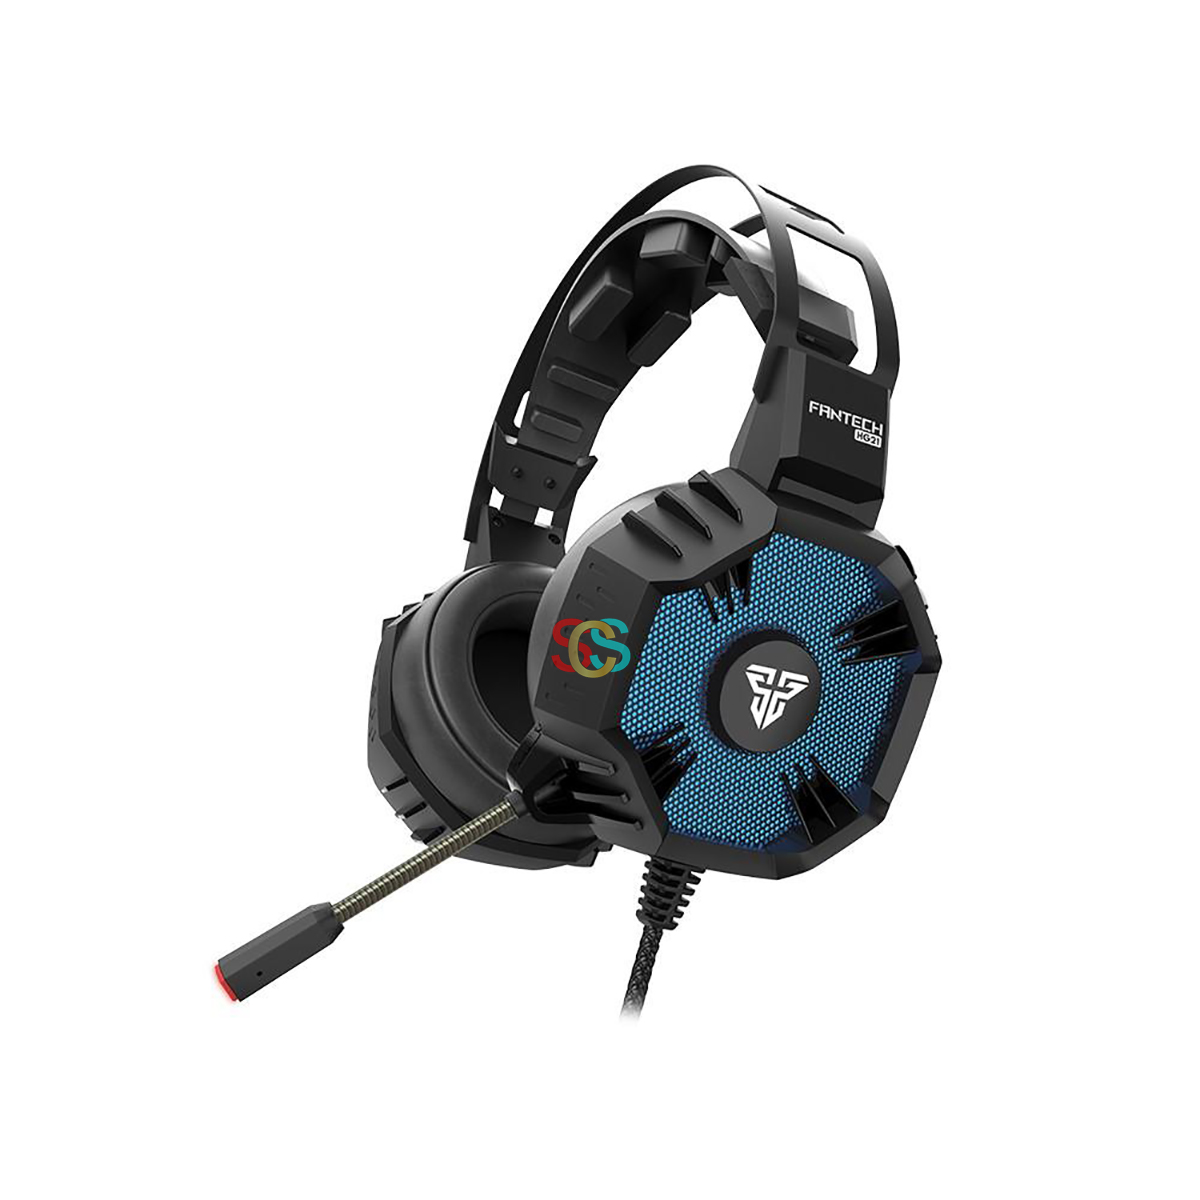 Fantech HG21 Wired Black Gaming Headphone